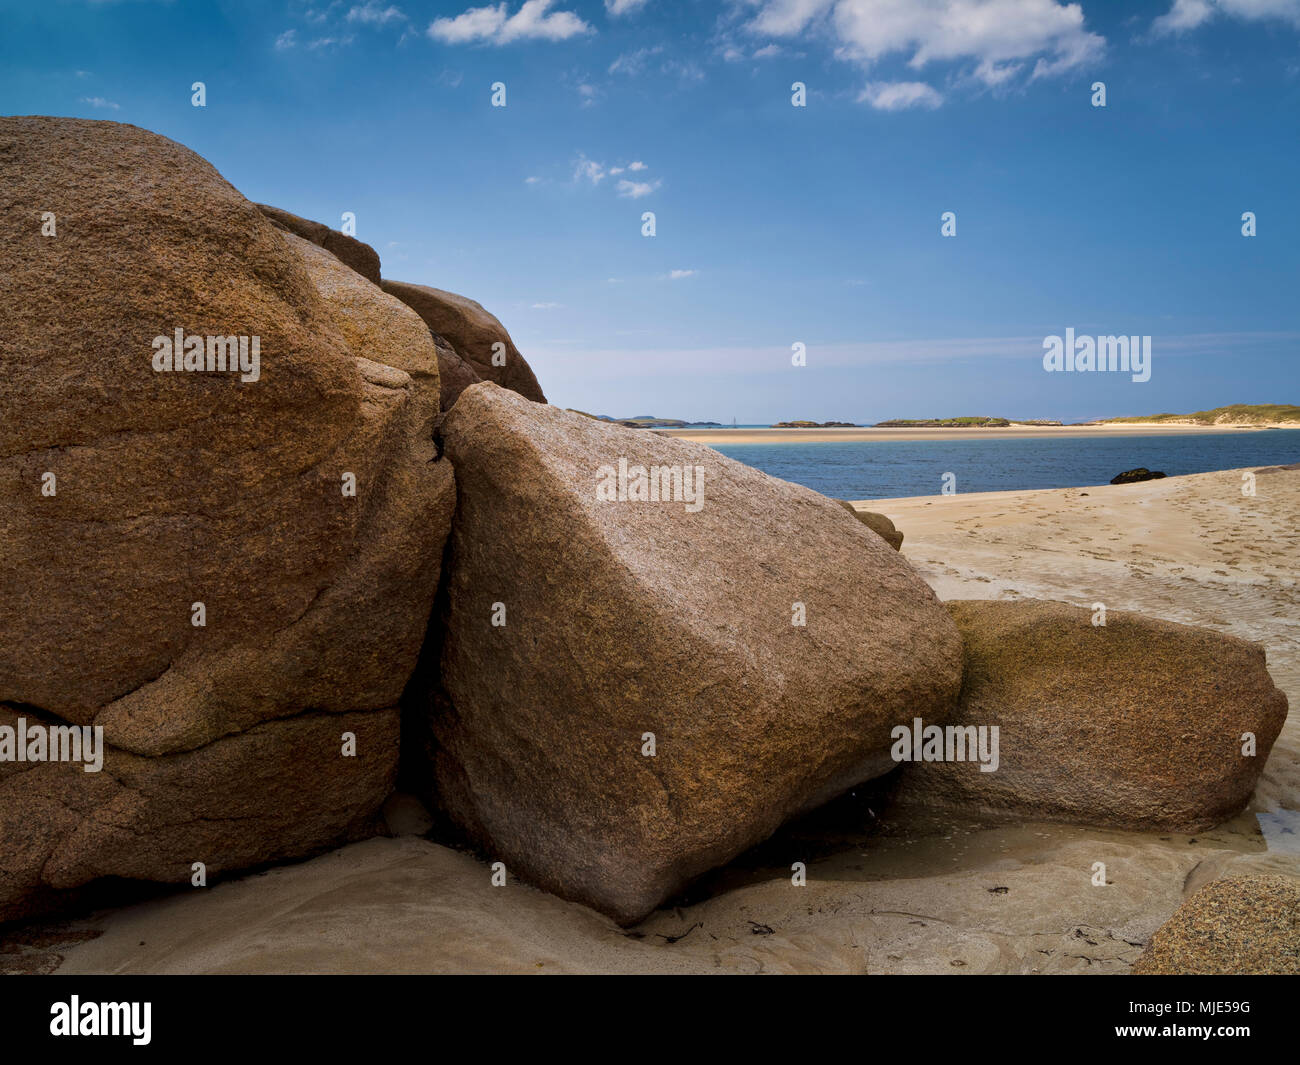 Ireland, Donegal, sandy beach and pink-coloured granite rocks at the Gweedore Bay close Derrybeg - Stock Image